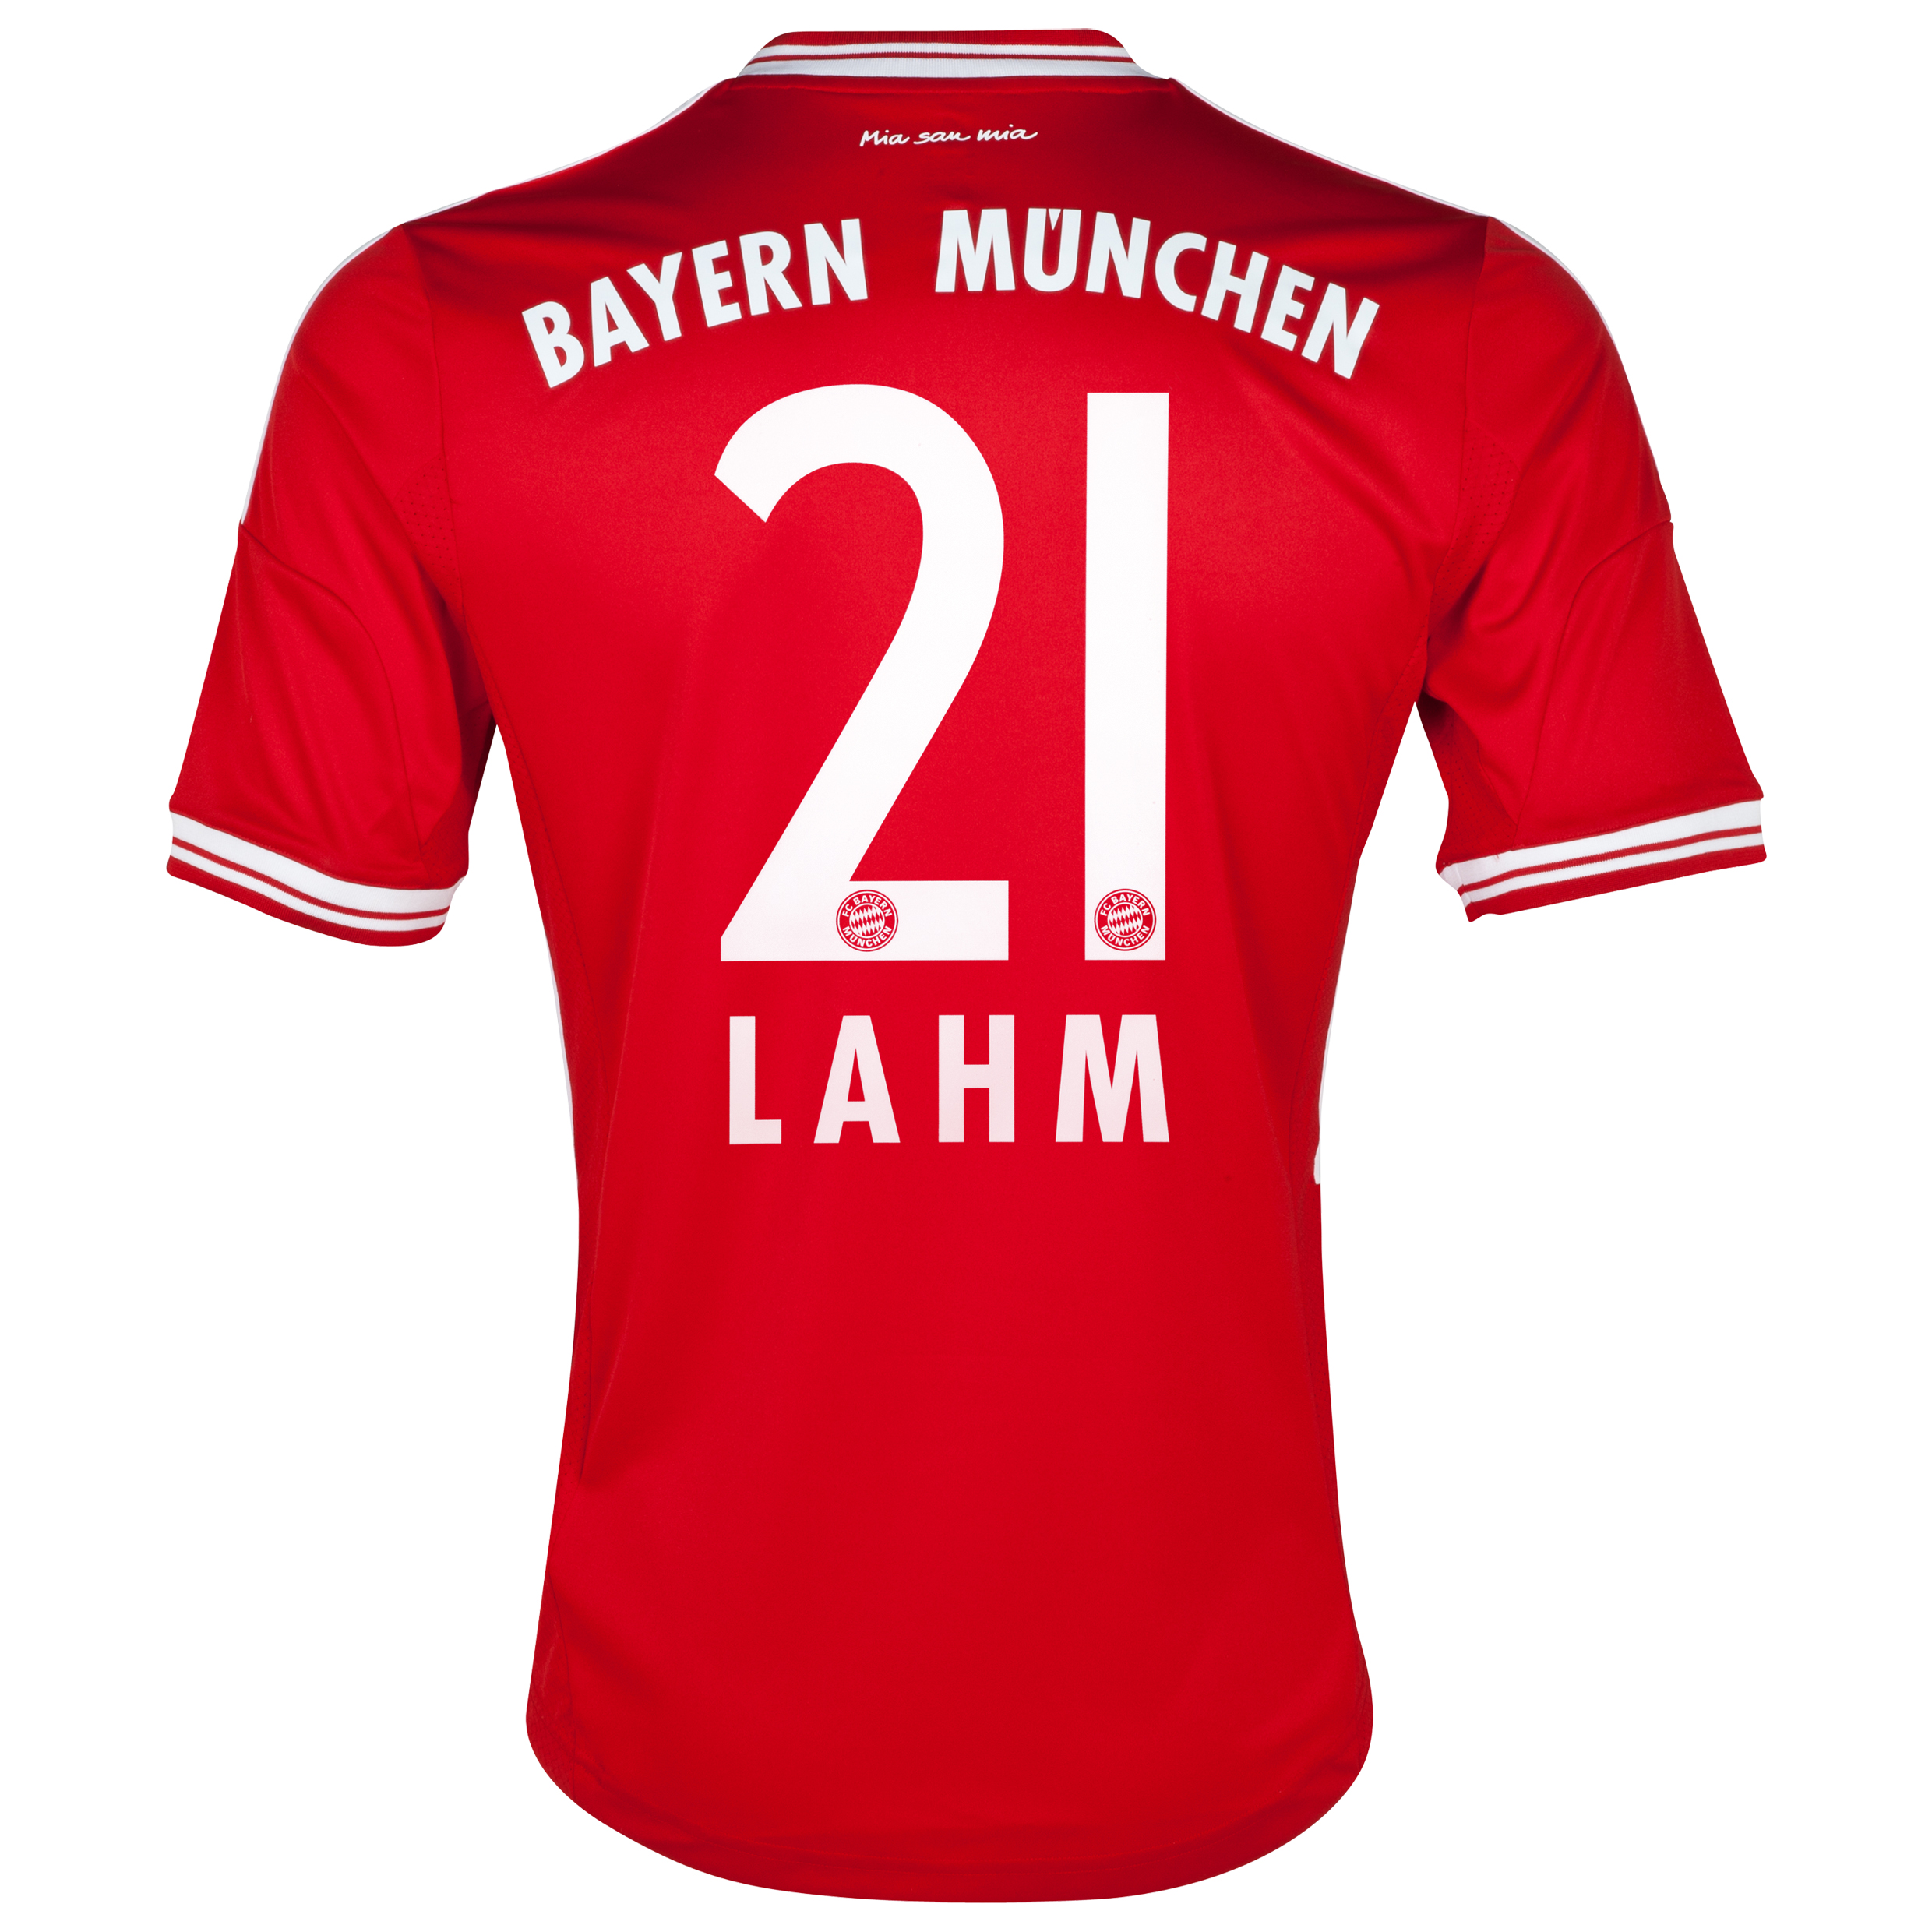 Bayern Munich Home Shirt 2013/14 kids with Lahm 21 printing